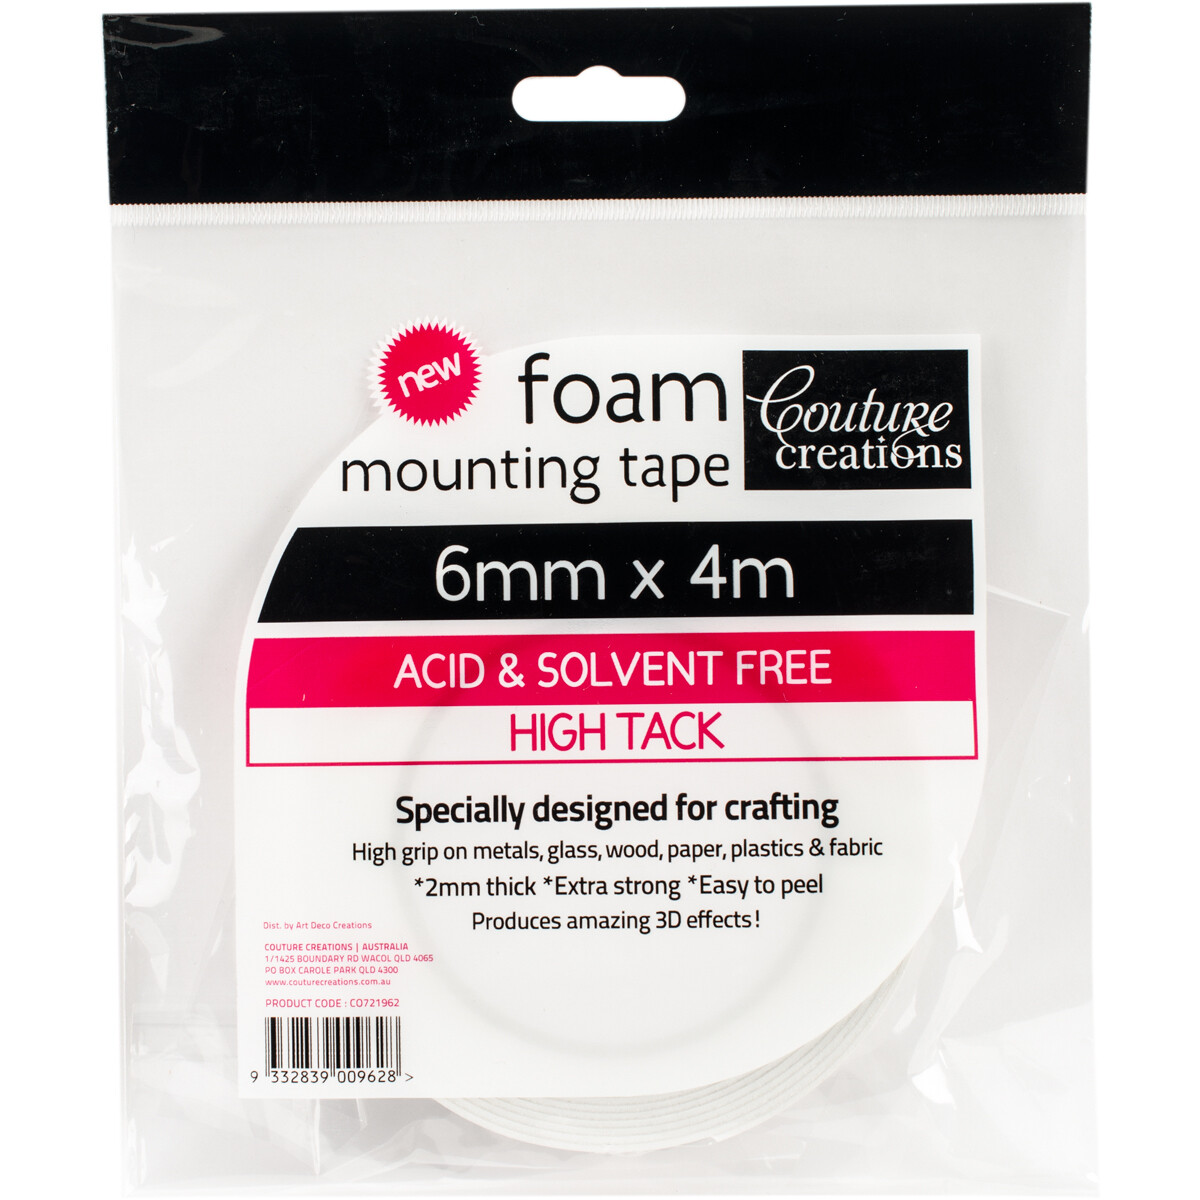 Couture Creations Foam Mounting Tape - High Tack 6mm x 4m